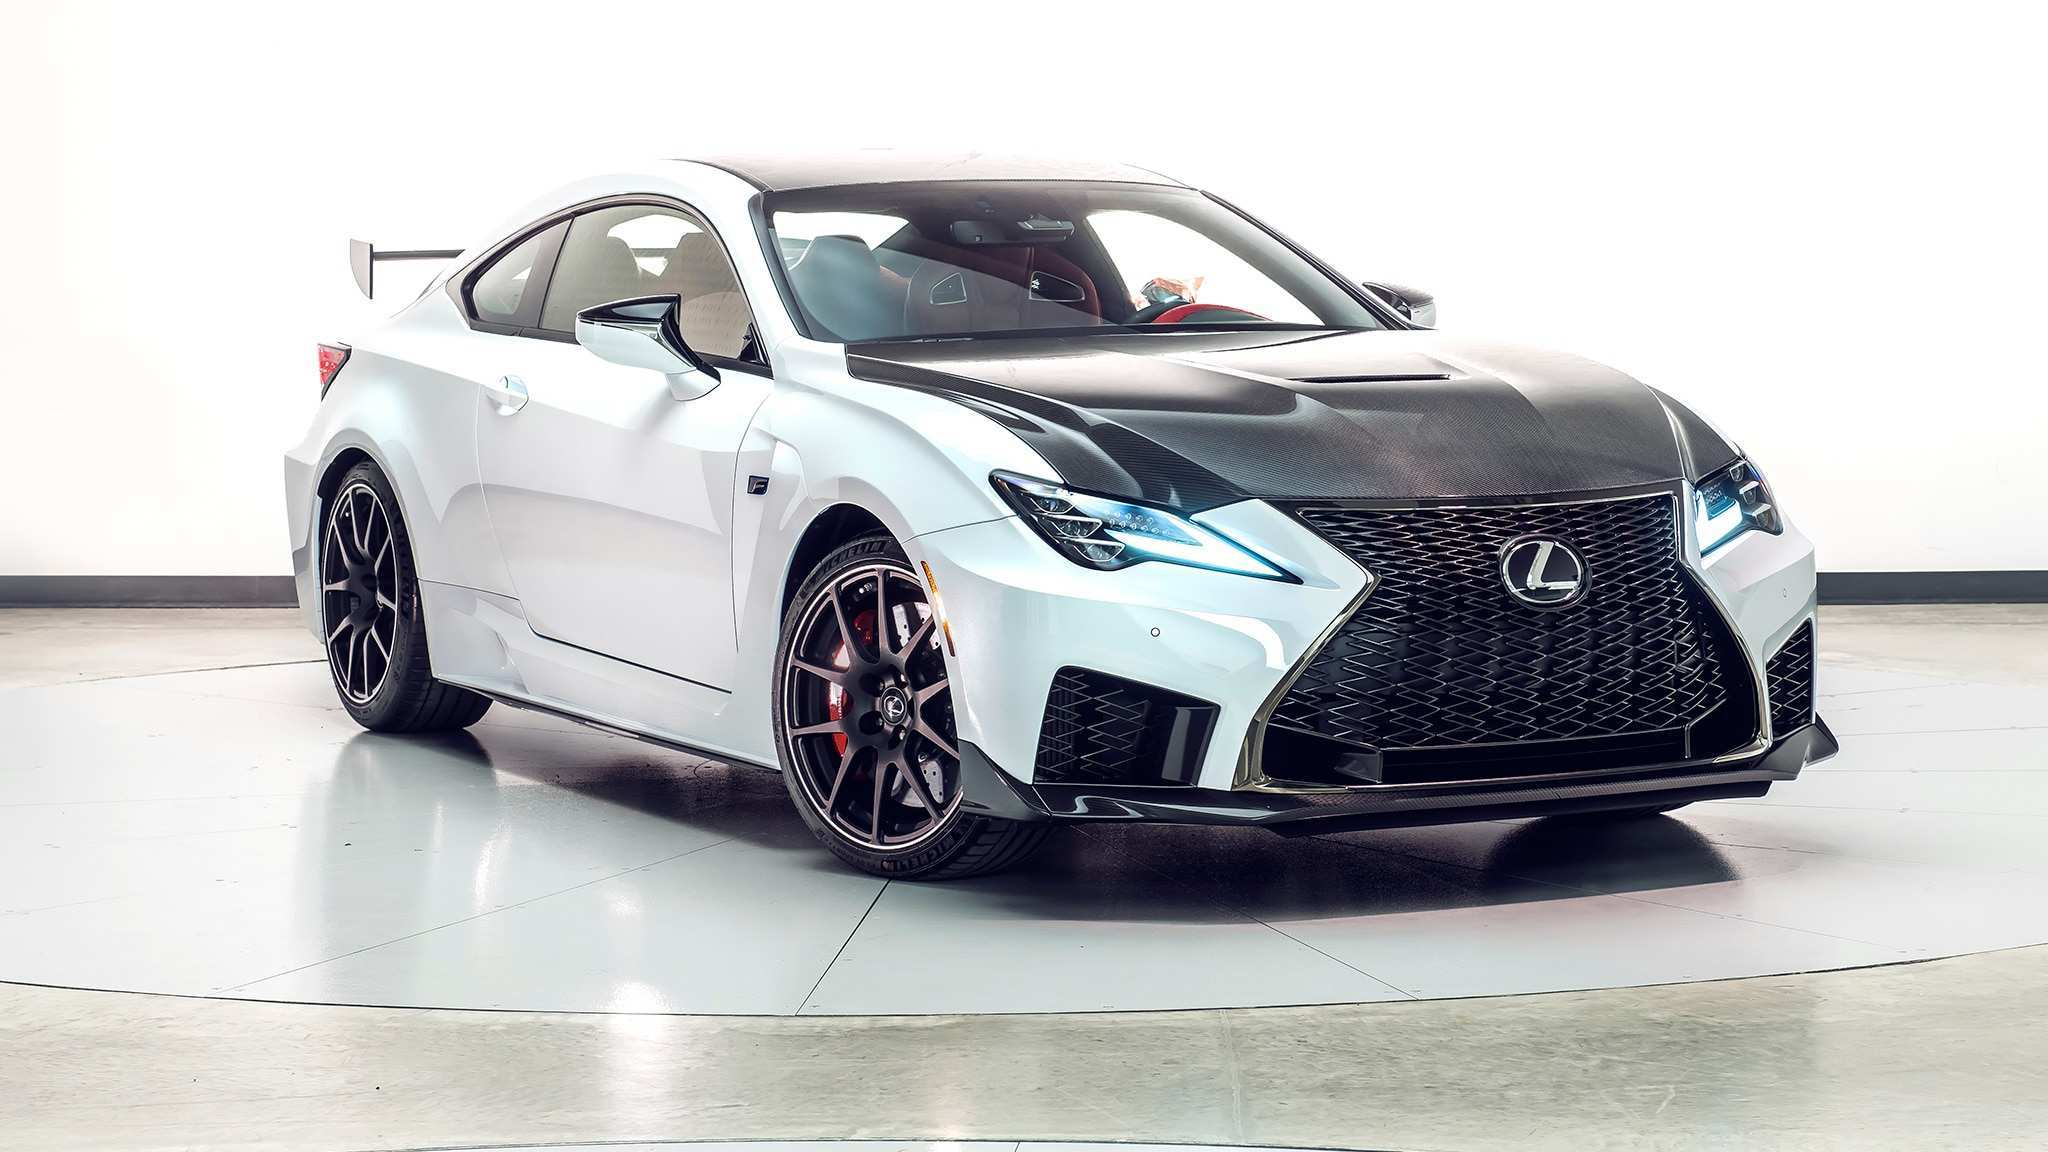 52 The Best Rx300 Lexus 2019 Release Date Price